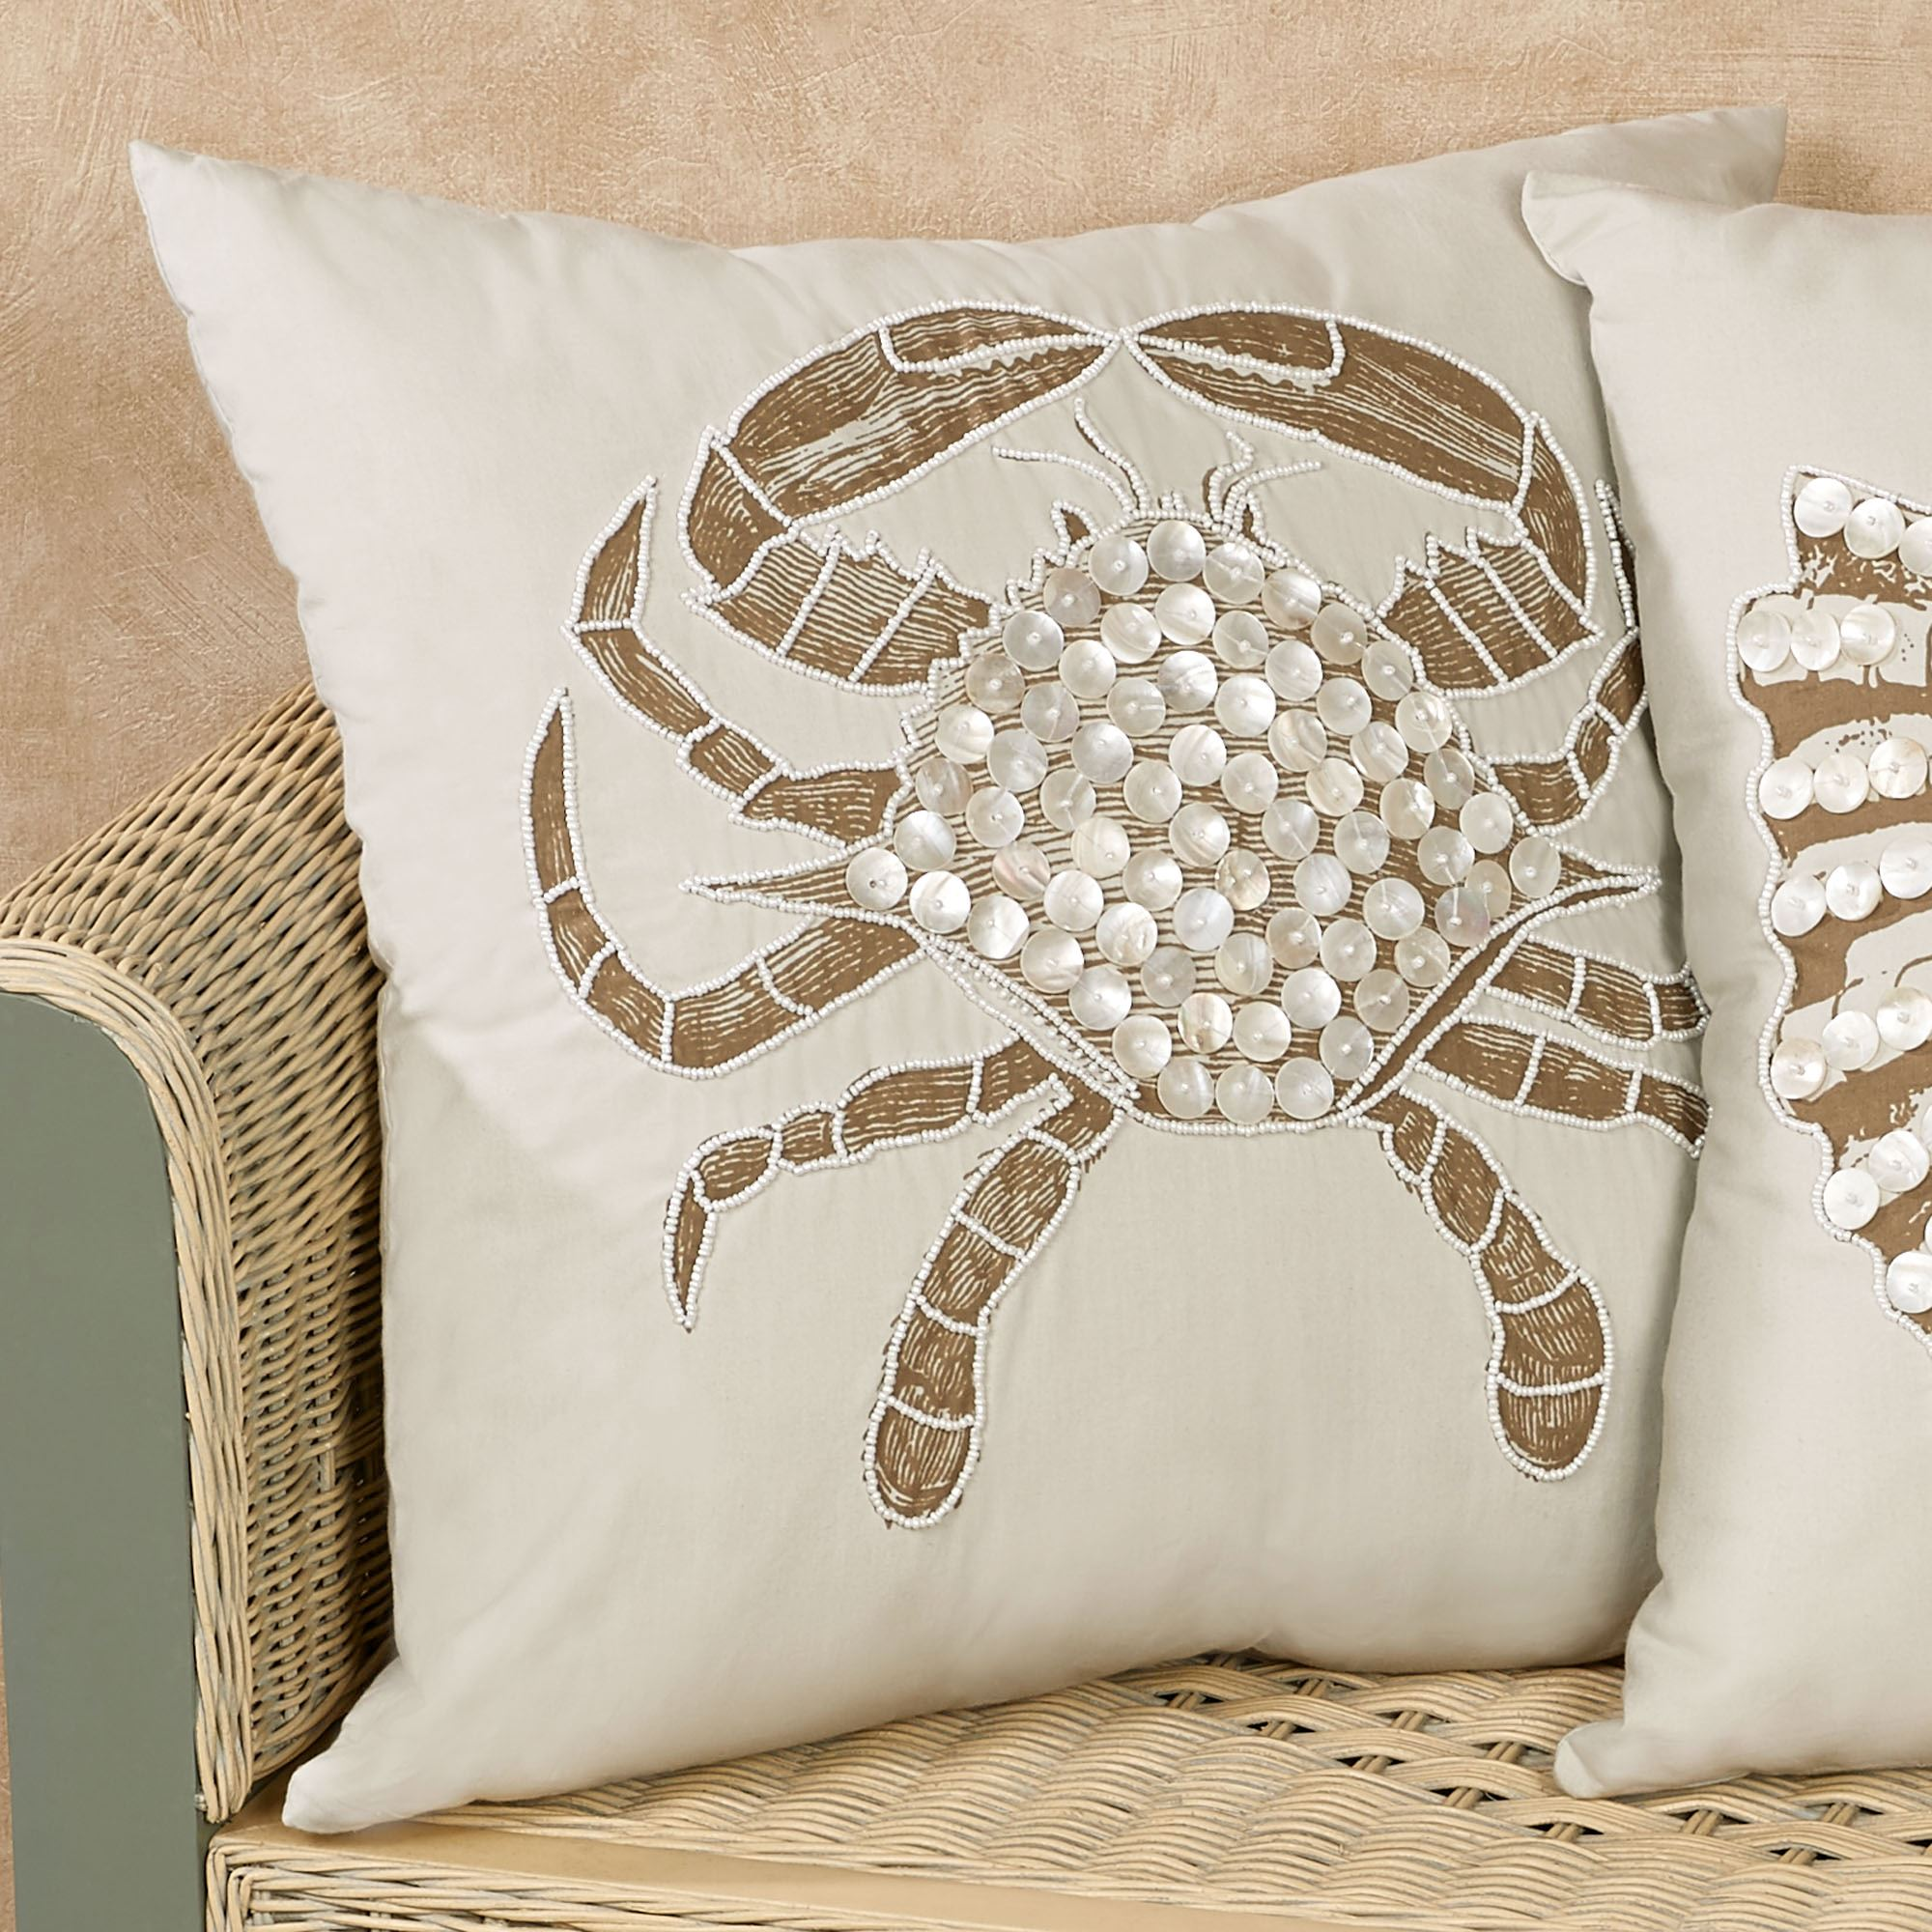 sea pillows under decorative the rectangle embroidered pillow cotton pin